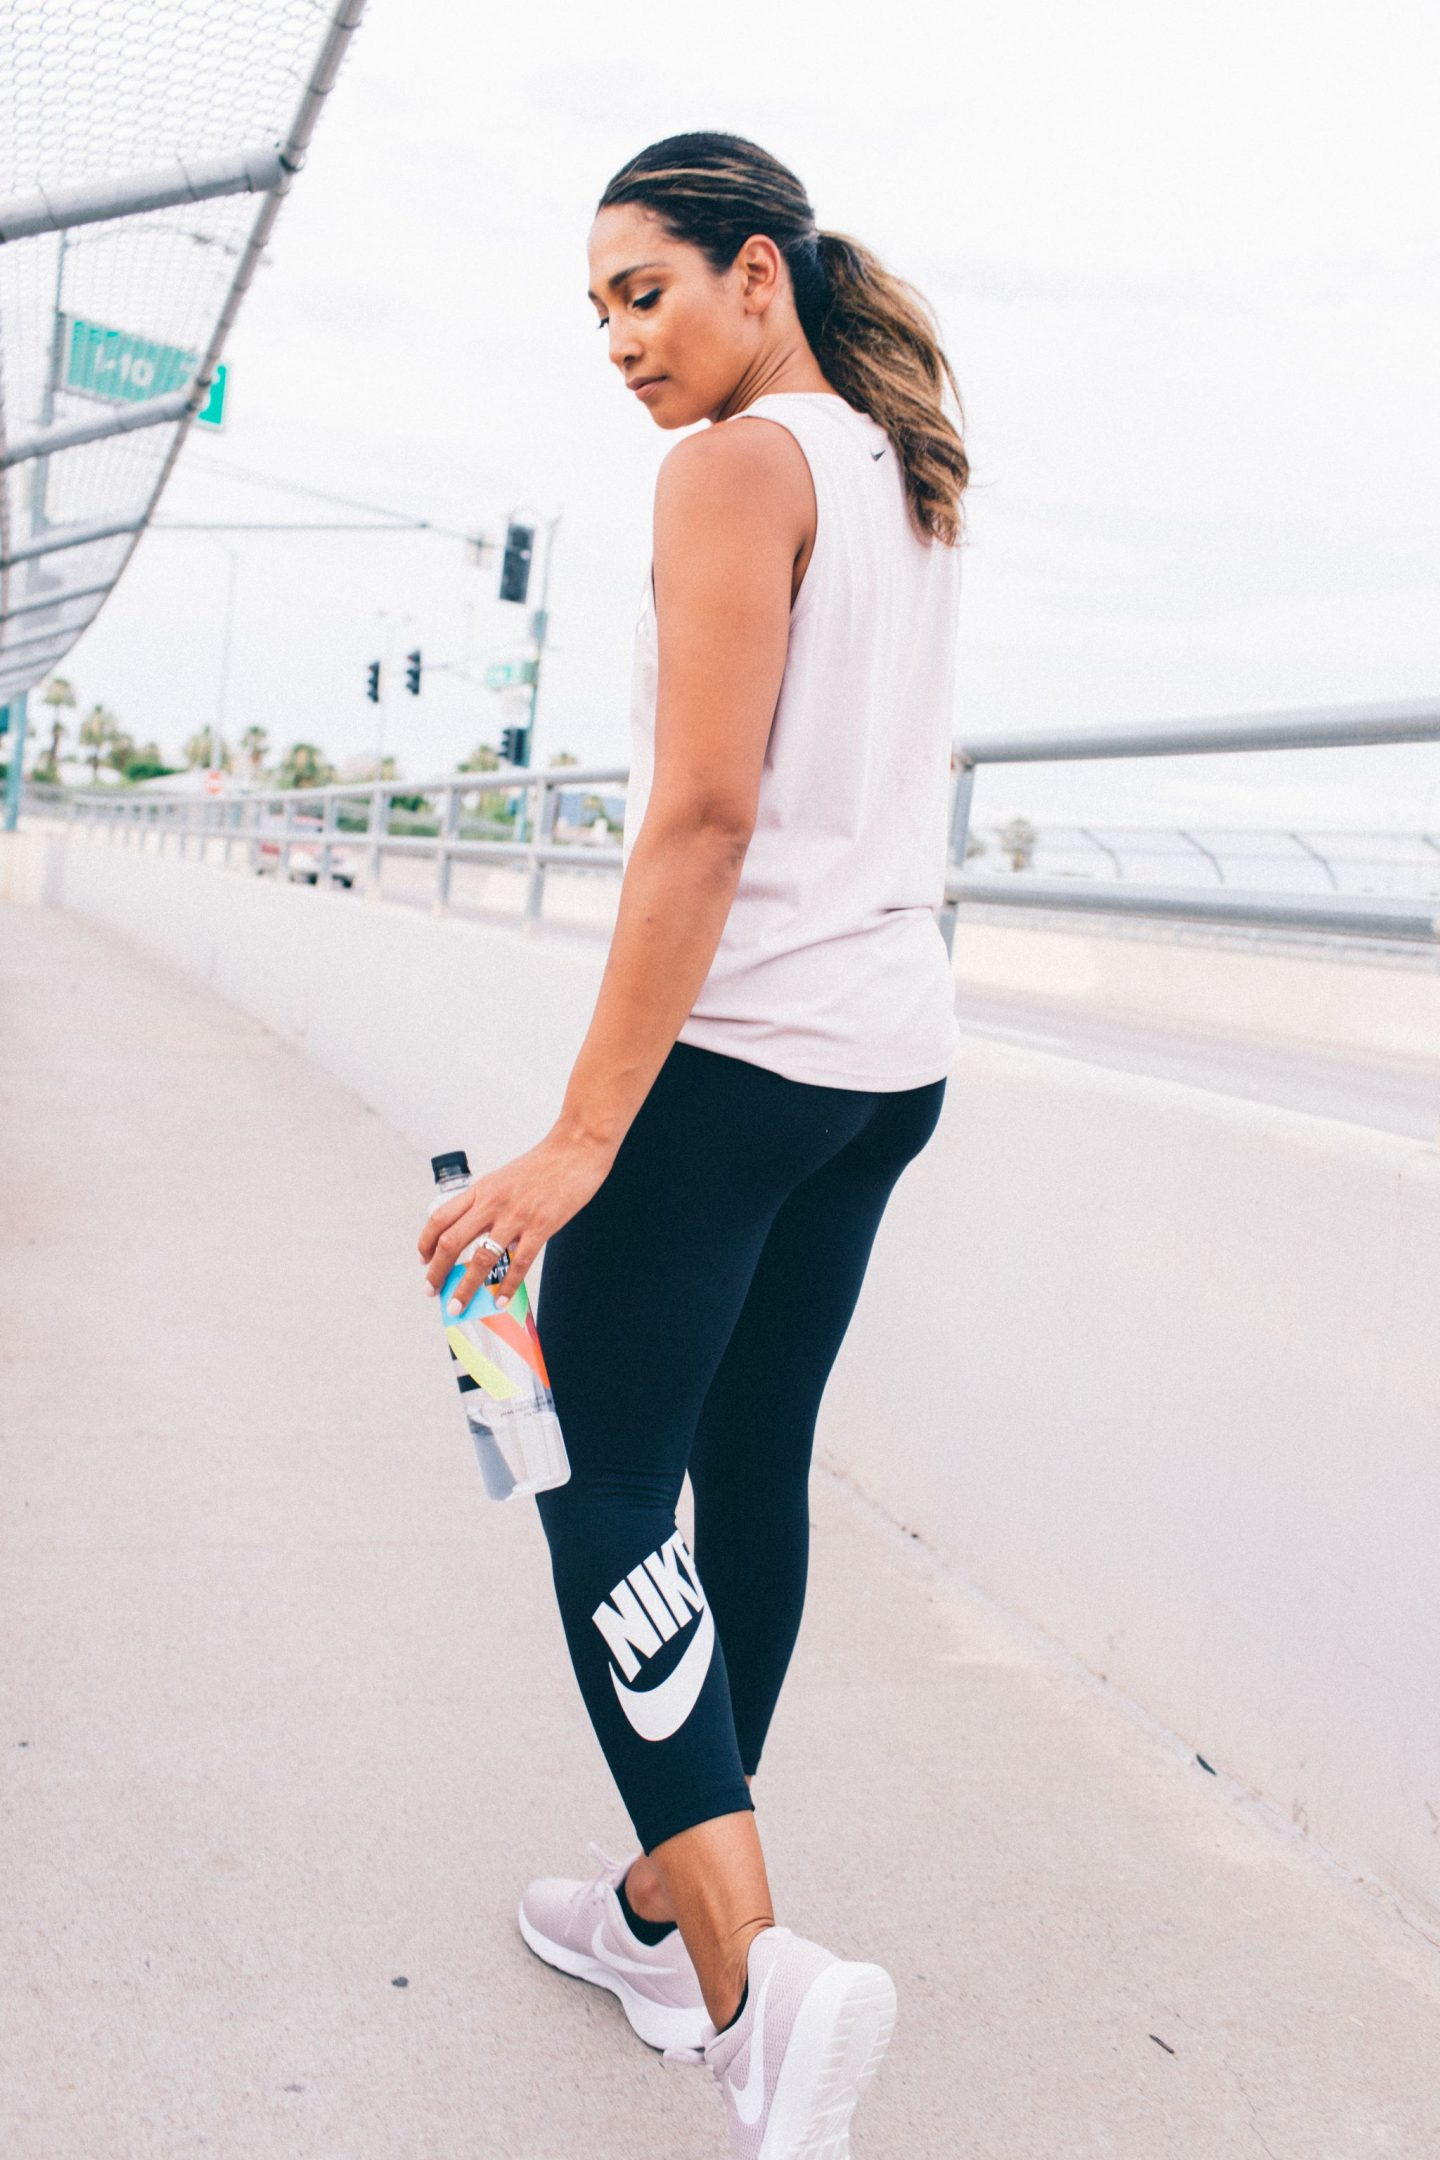 Fitness Outfit, Athlesuire Wear, Workout Clothes